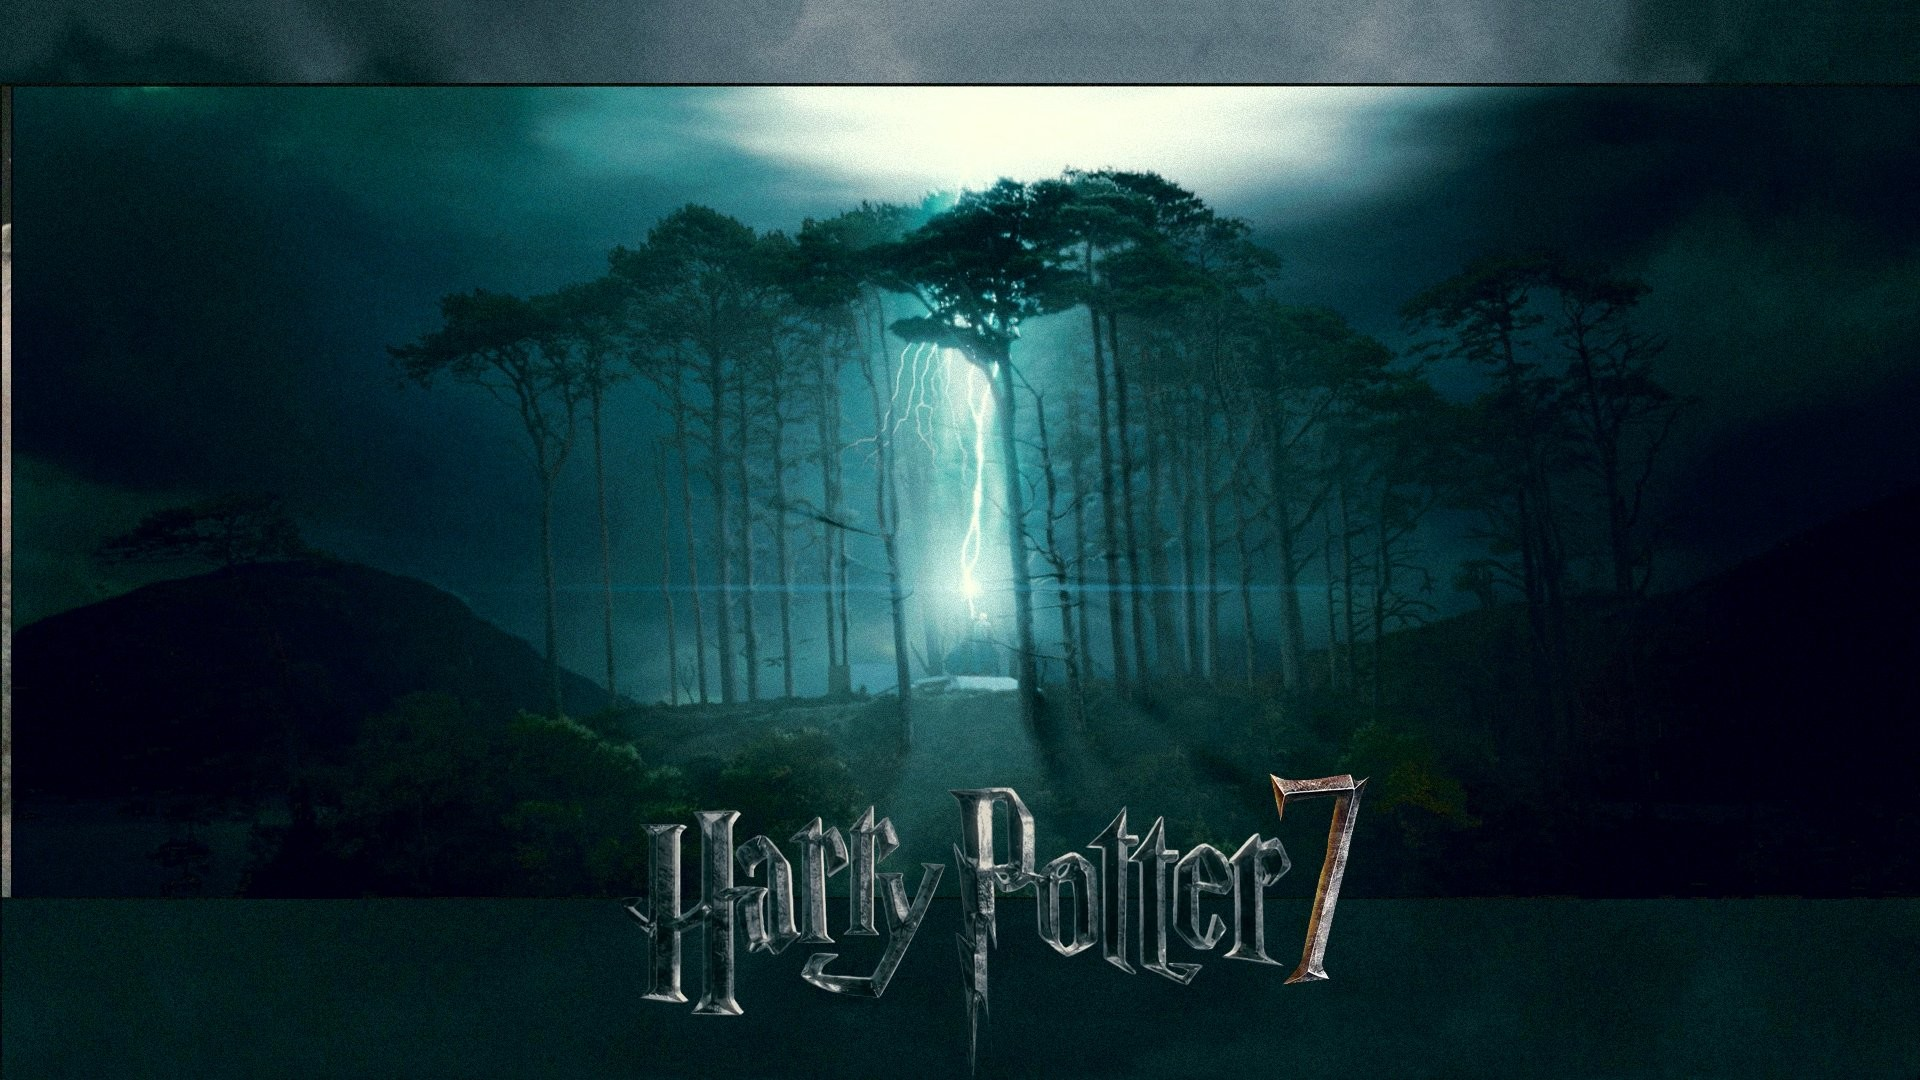 Harry Potter and the Deathly Hallows wallpaper Movie wallpapers 500×500  Deathly Hallows Wallpapers (